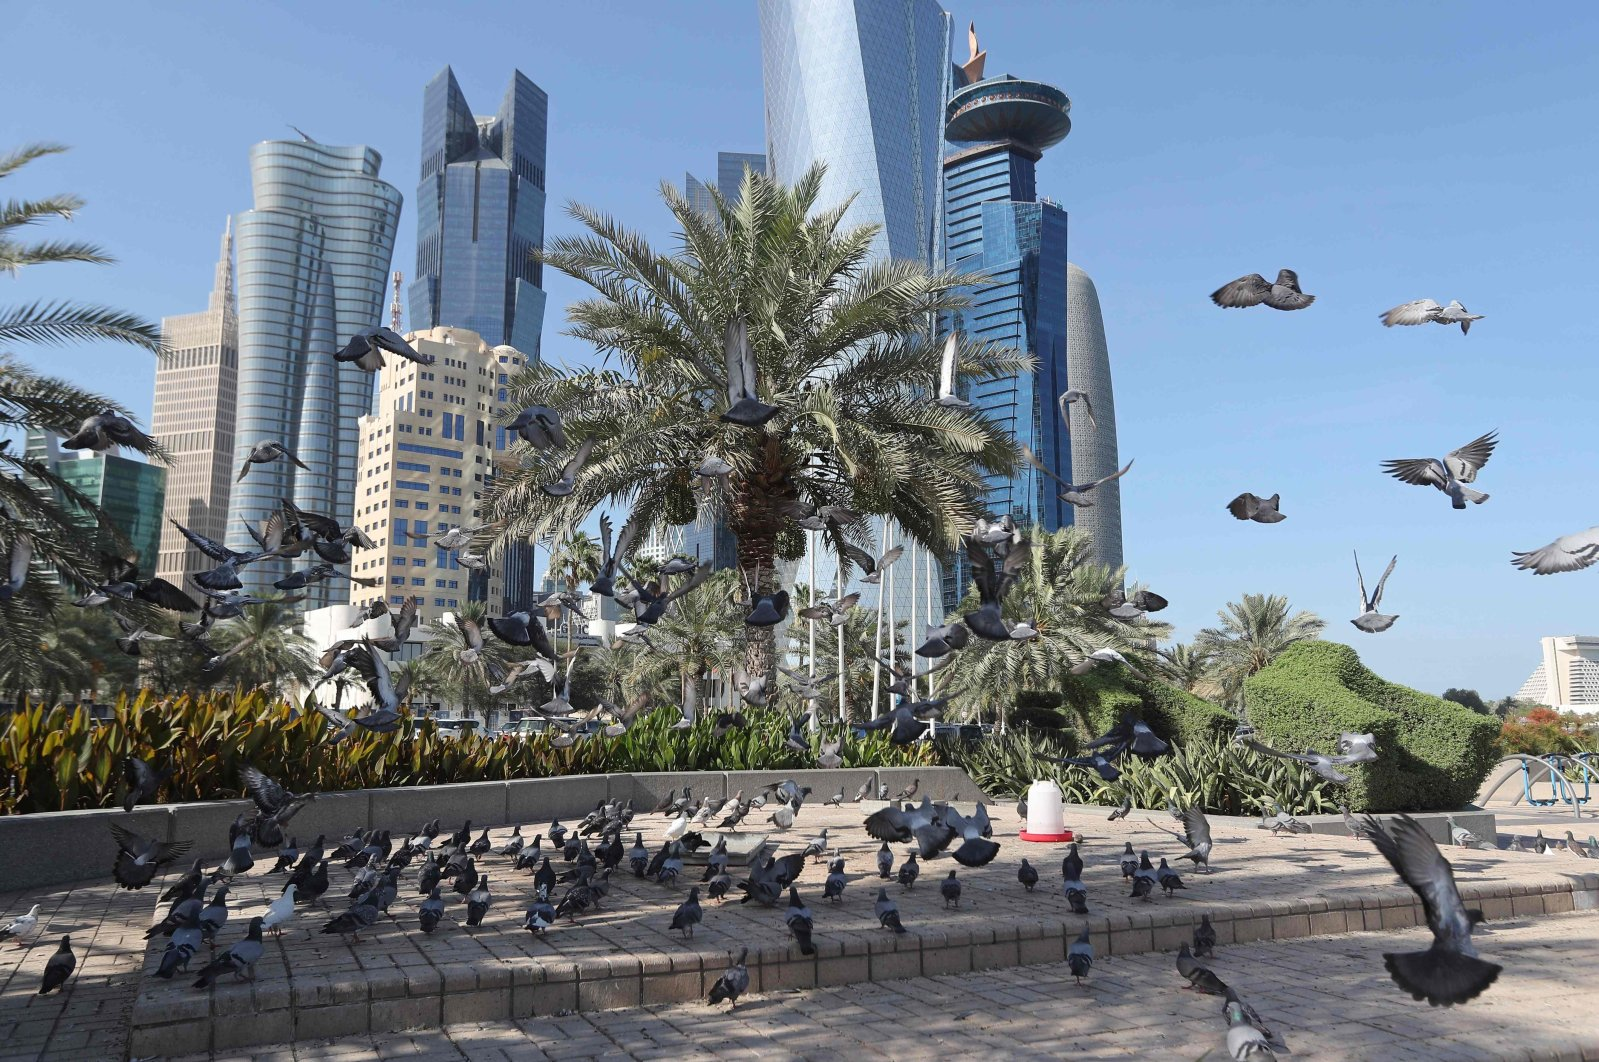 A general view shows pigeons flying above the Corniche in Doha, Qatar, June 5, 2017. (AFP Photo)